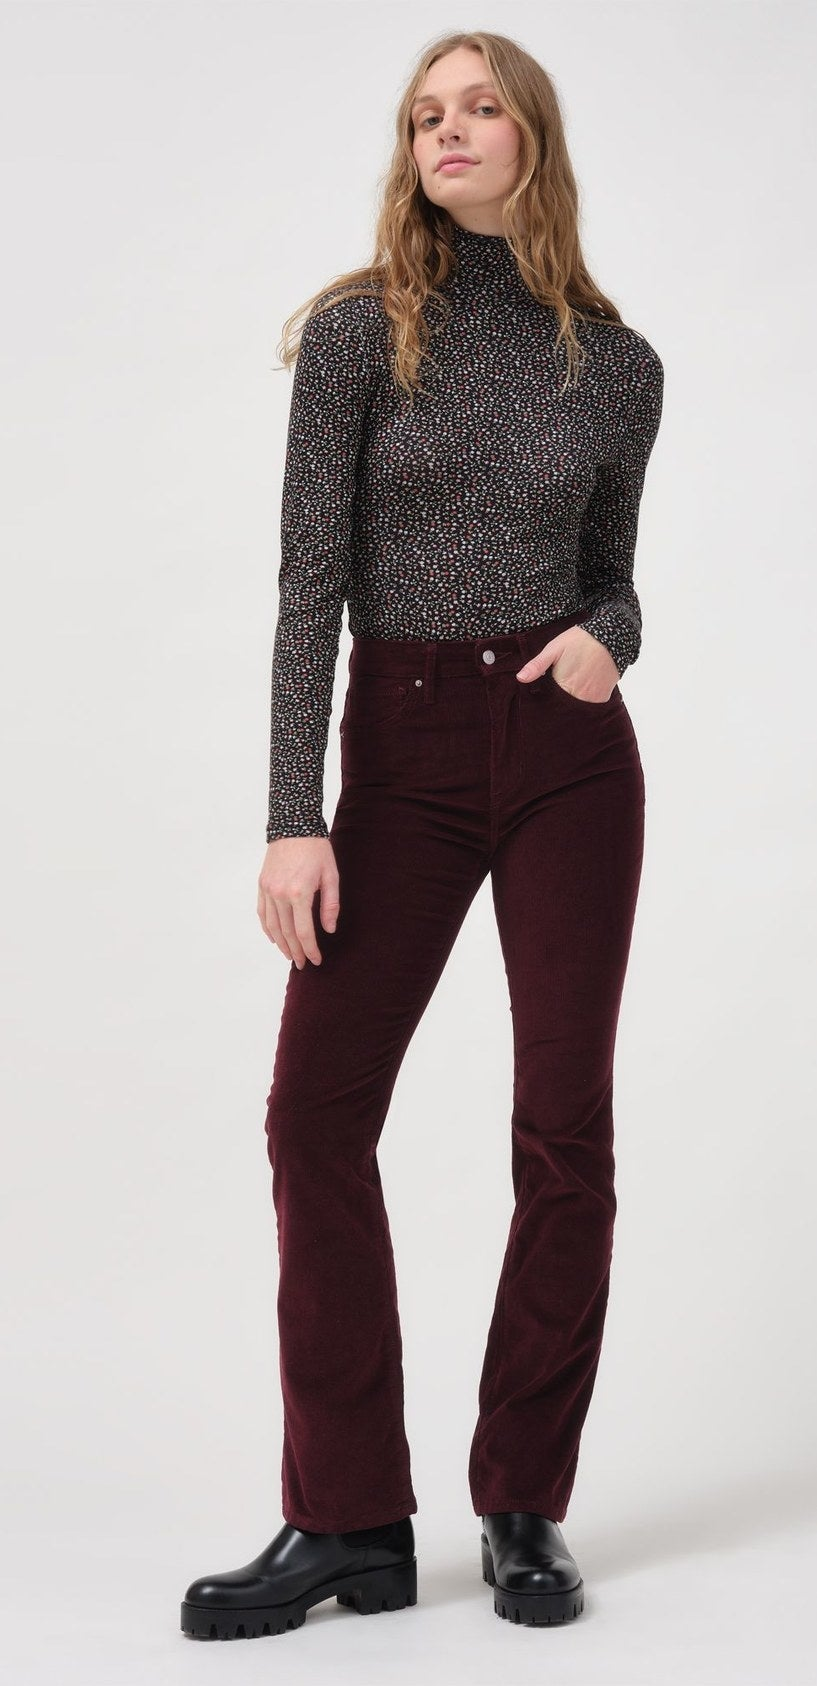 model wearing burgundy corduroy pants with doc martens and a turtleneck